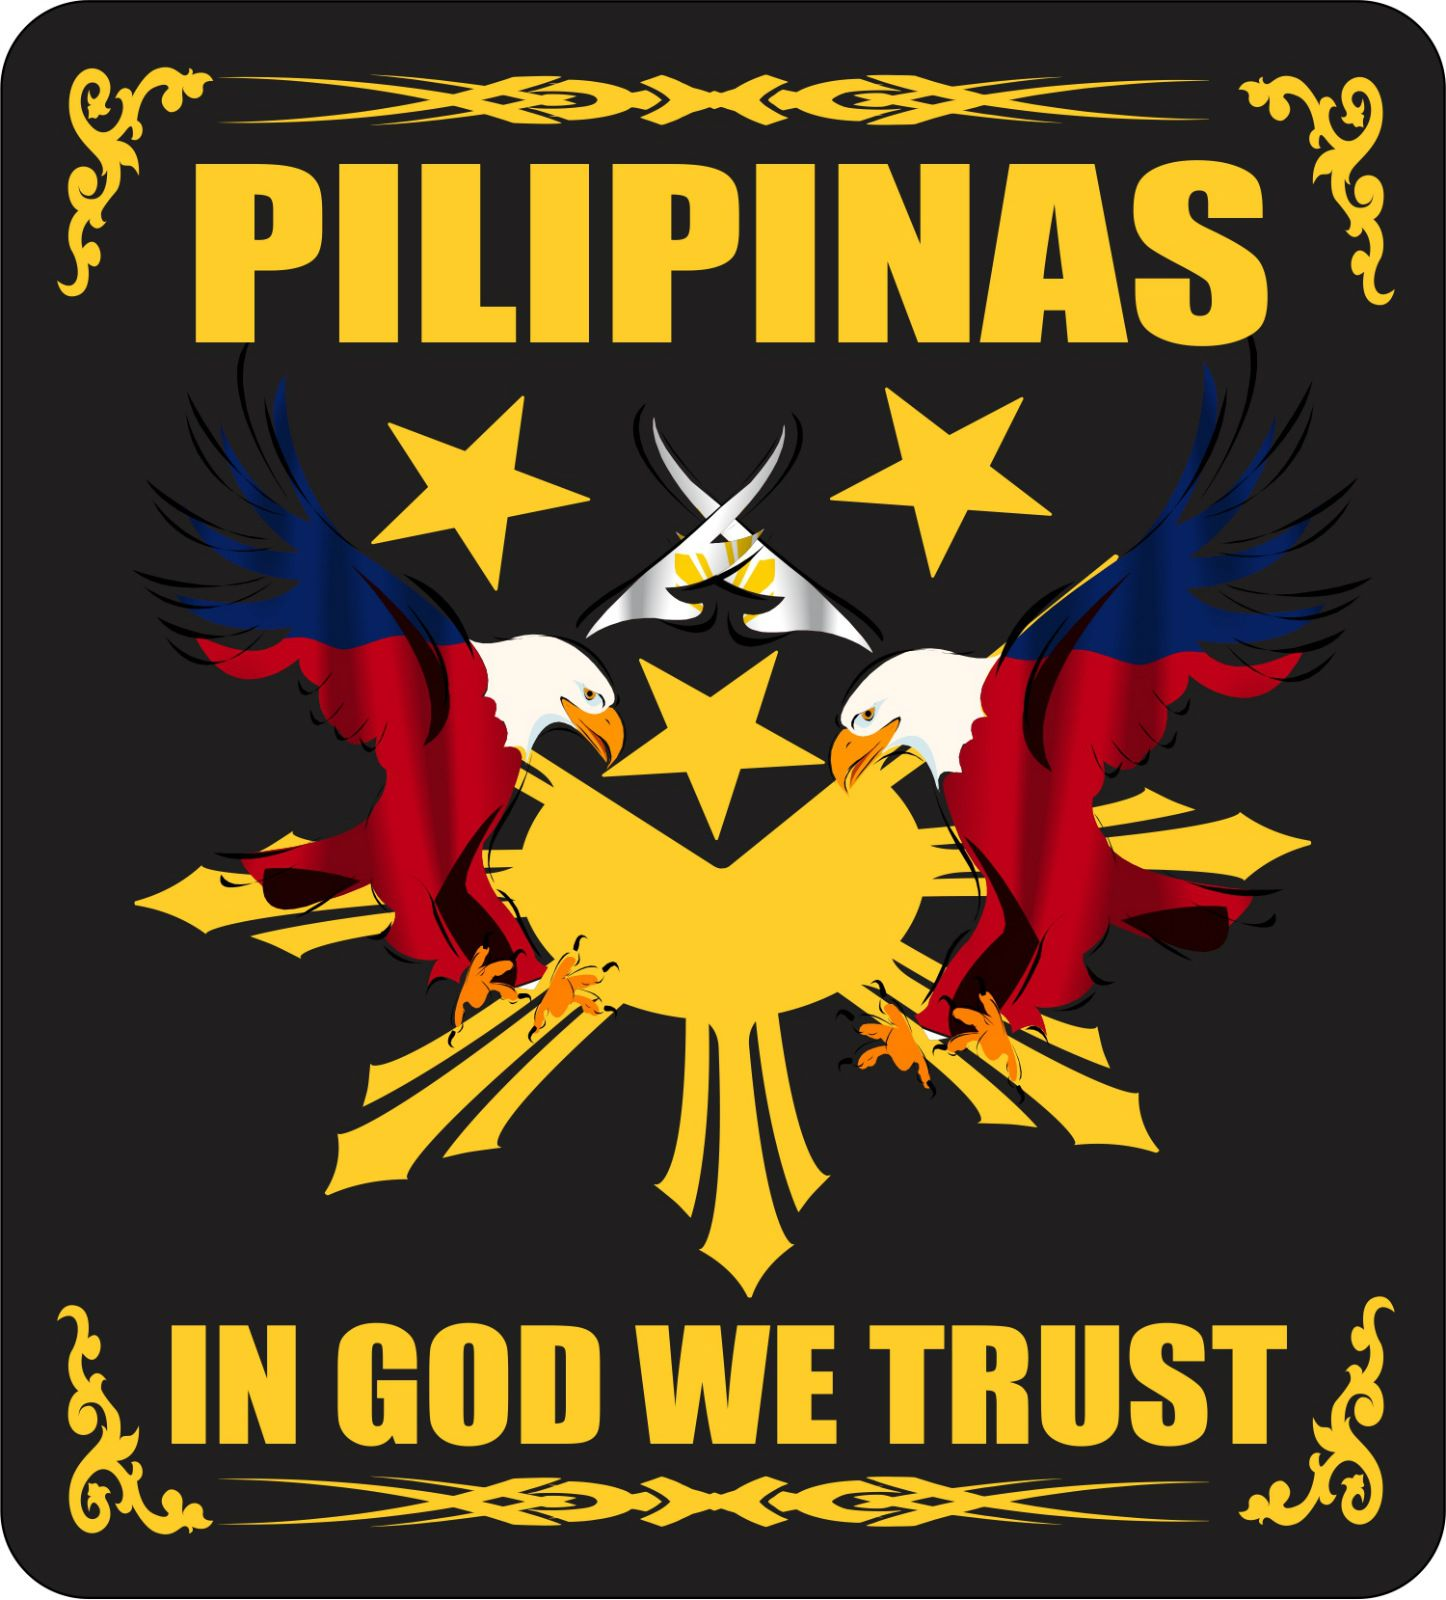 Car sticker design philippines - Philippines Flag Meaning Pilipinas In God We Trust Filipino Promotional Products